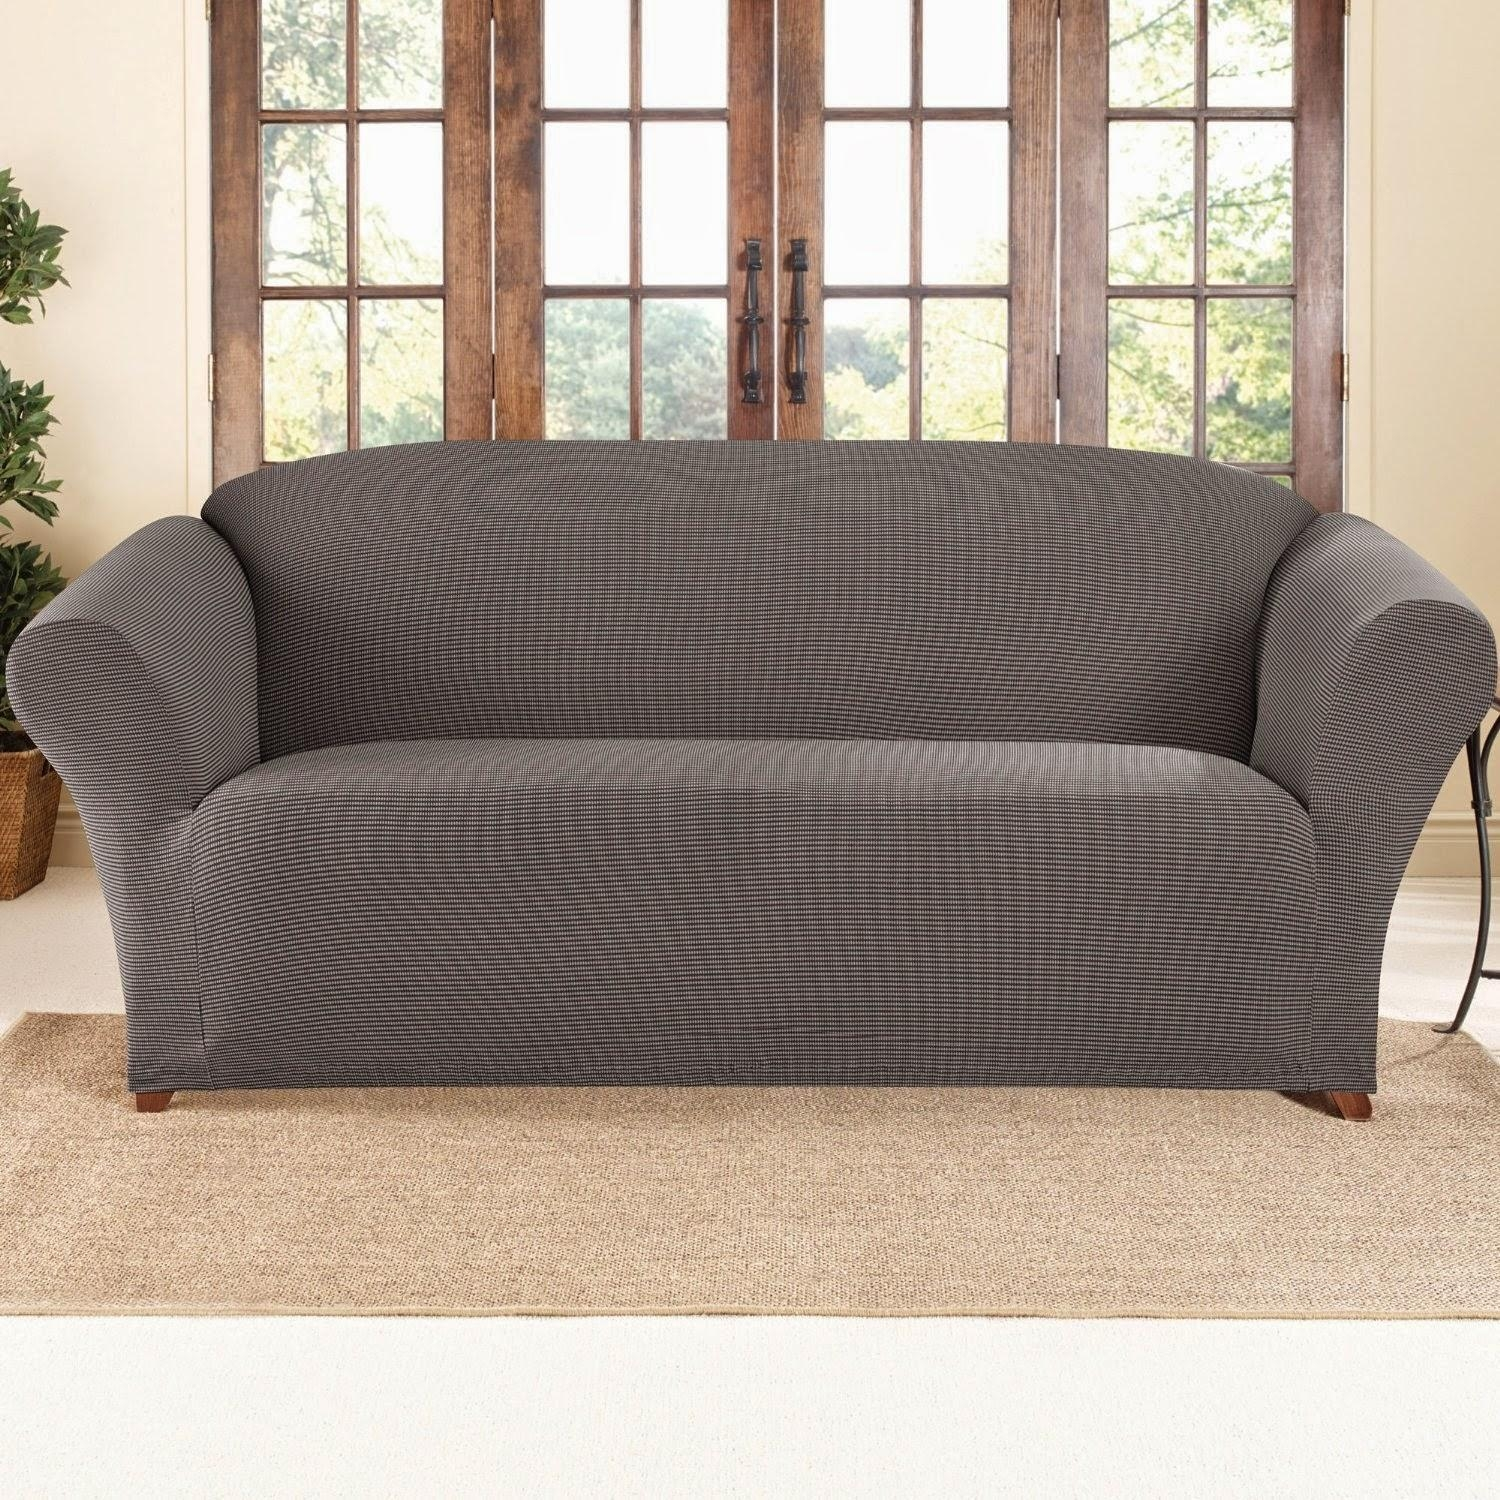 Furniture: Wonderful Walmart Couch Covers Design For Alluring Regarding Suede Slipcovers For Sofas (Image 5 of 20)